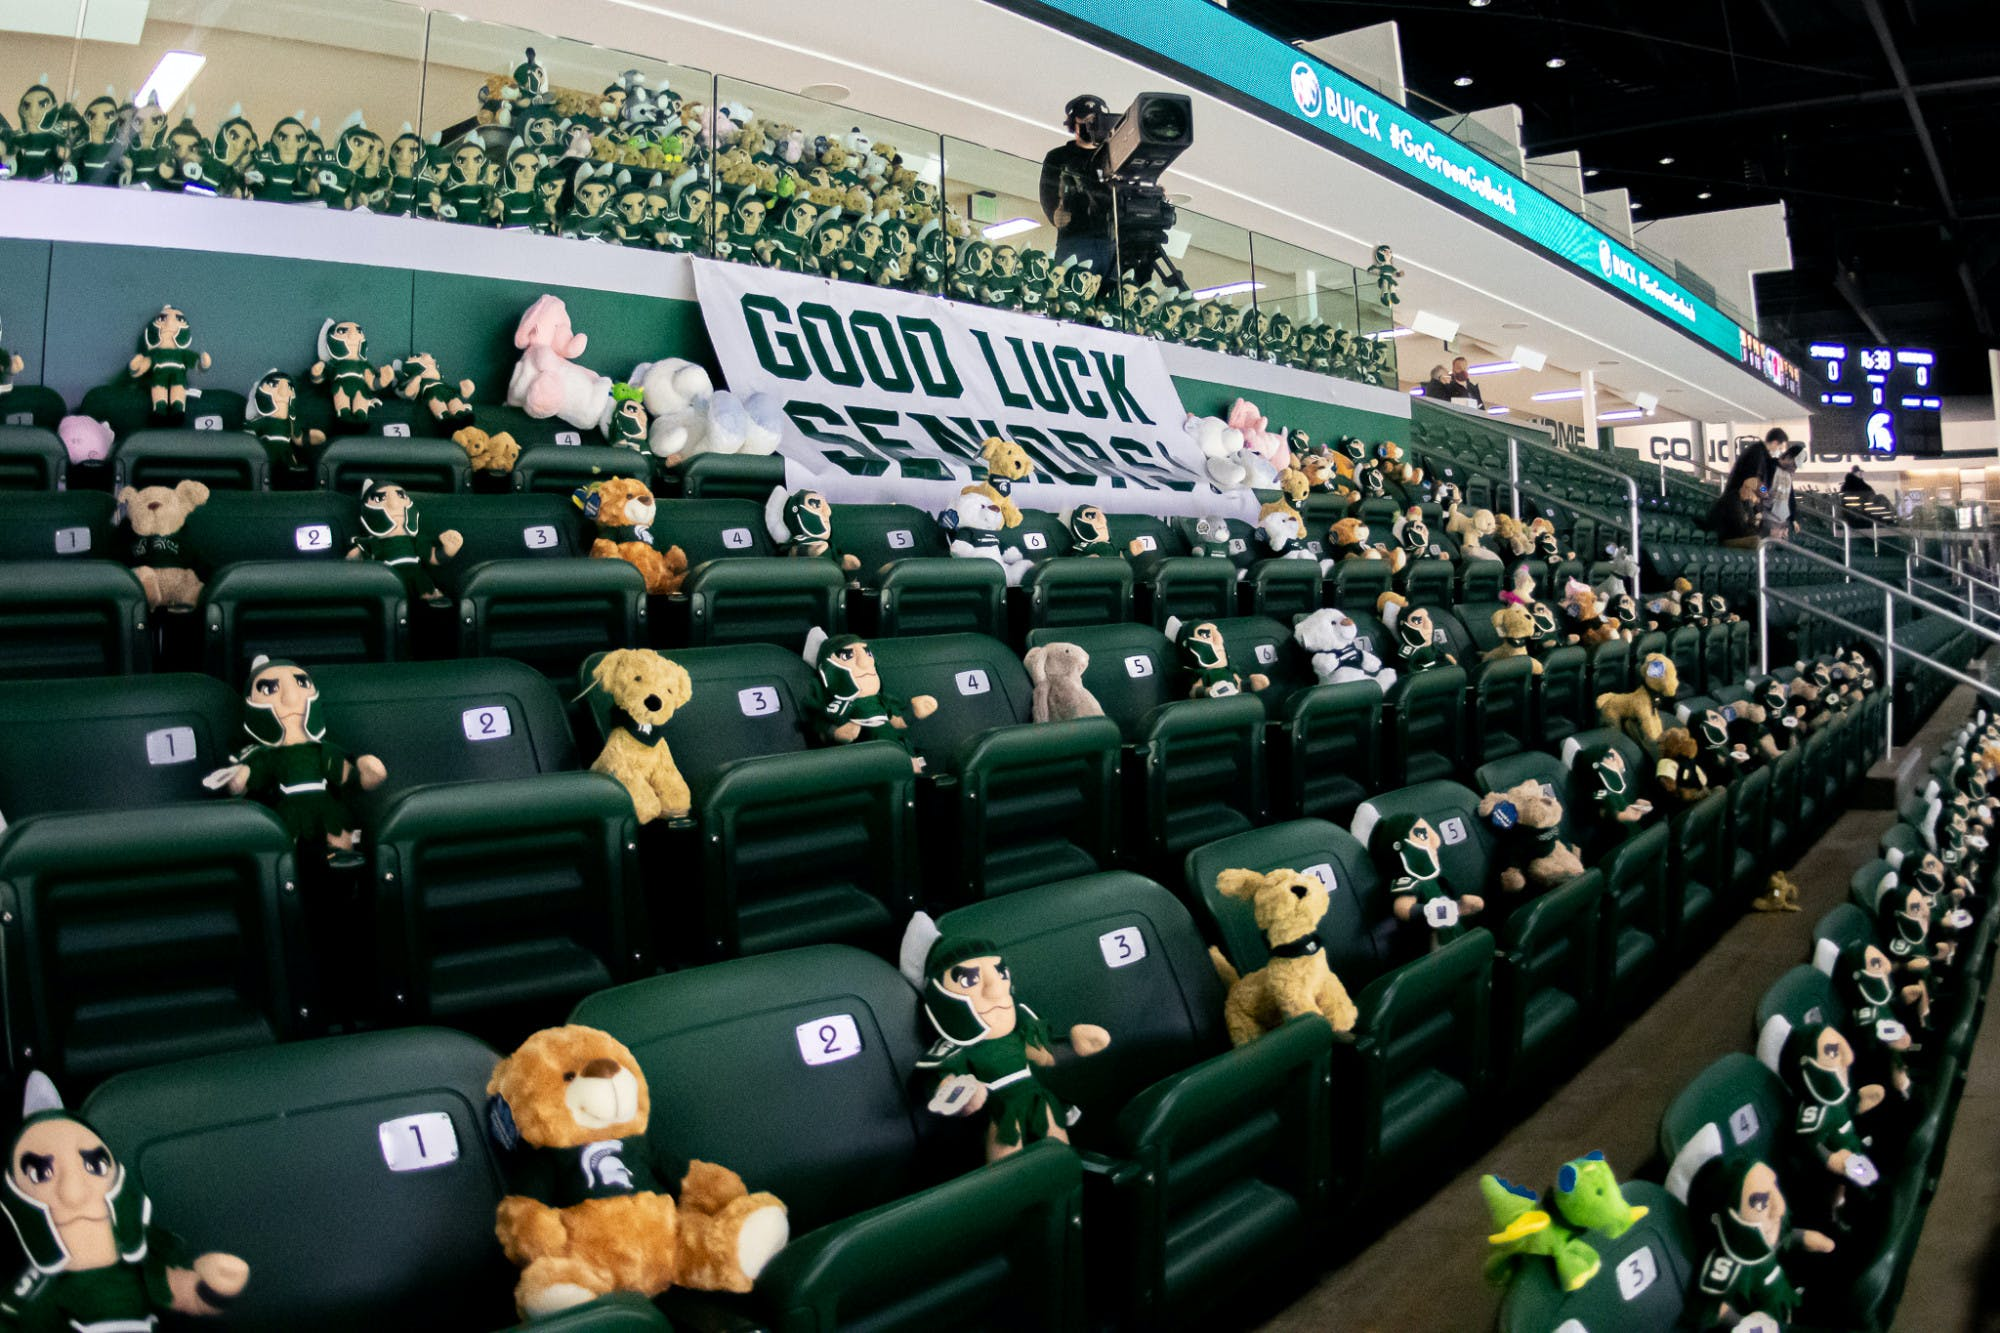 Empty sports stands are filled with stuffed animals. A sign that reads 'Good luck seniors' hangs nearby.